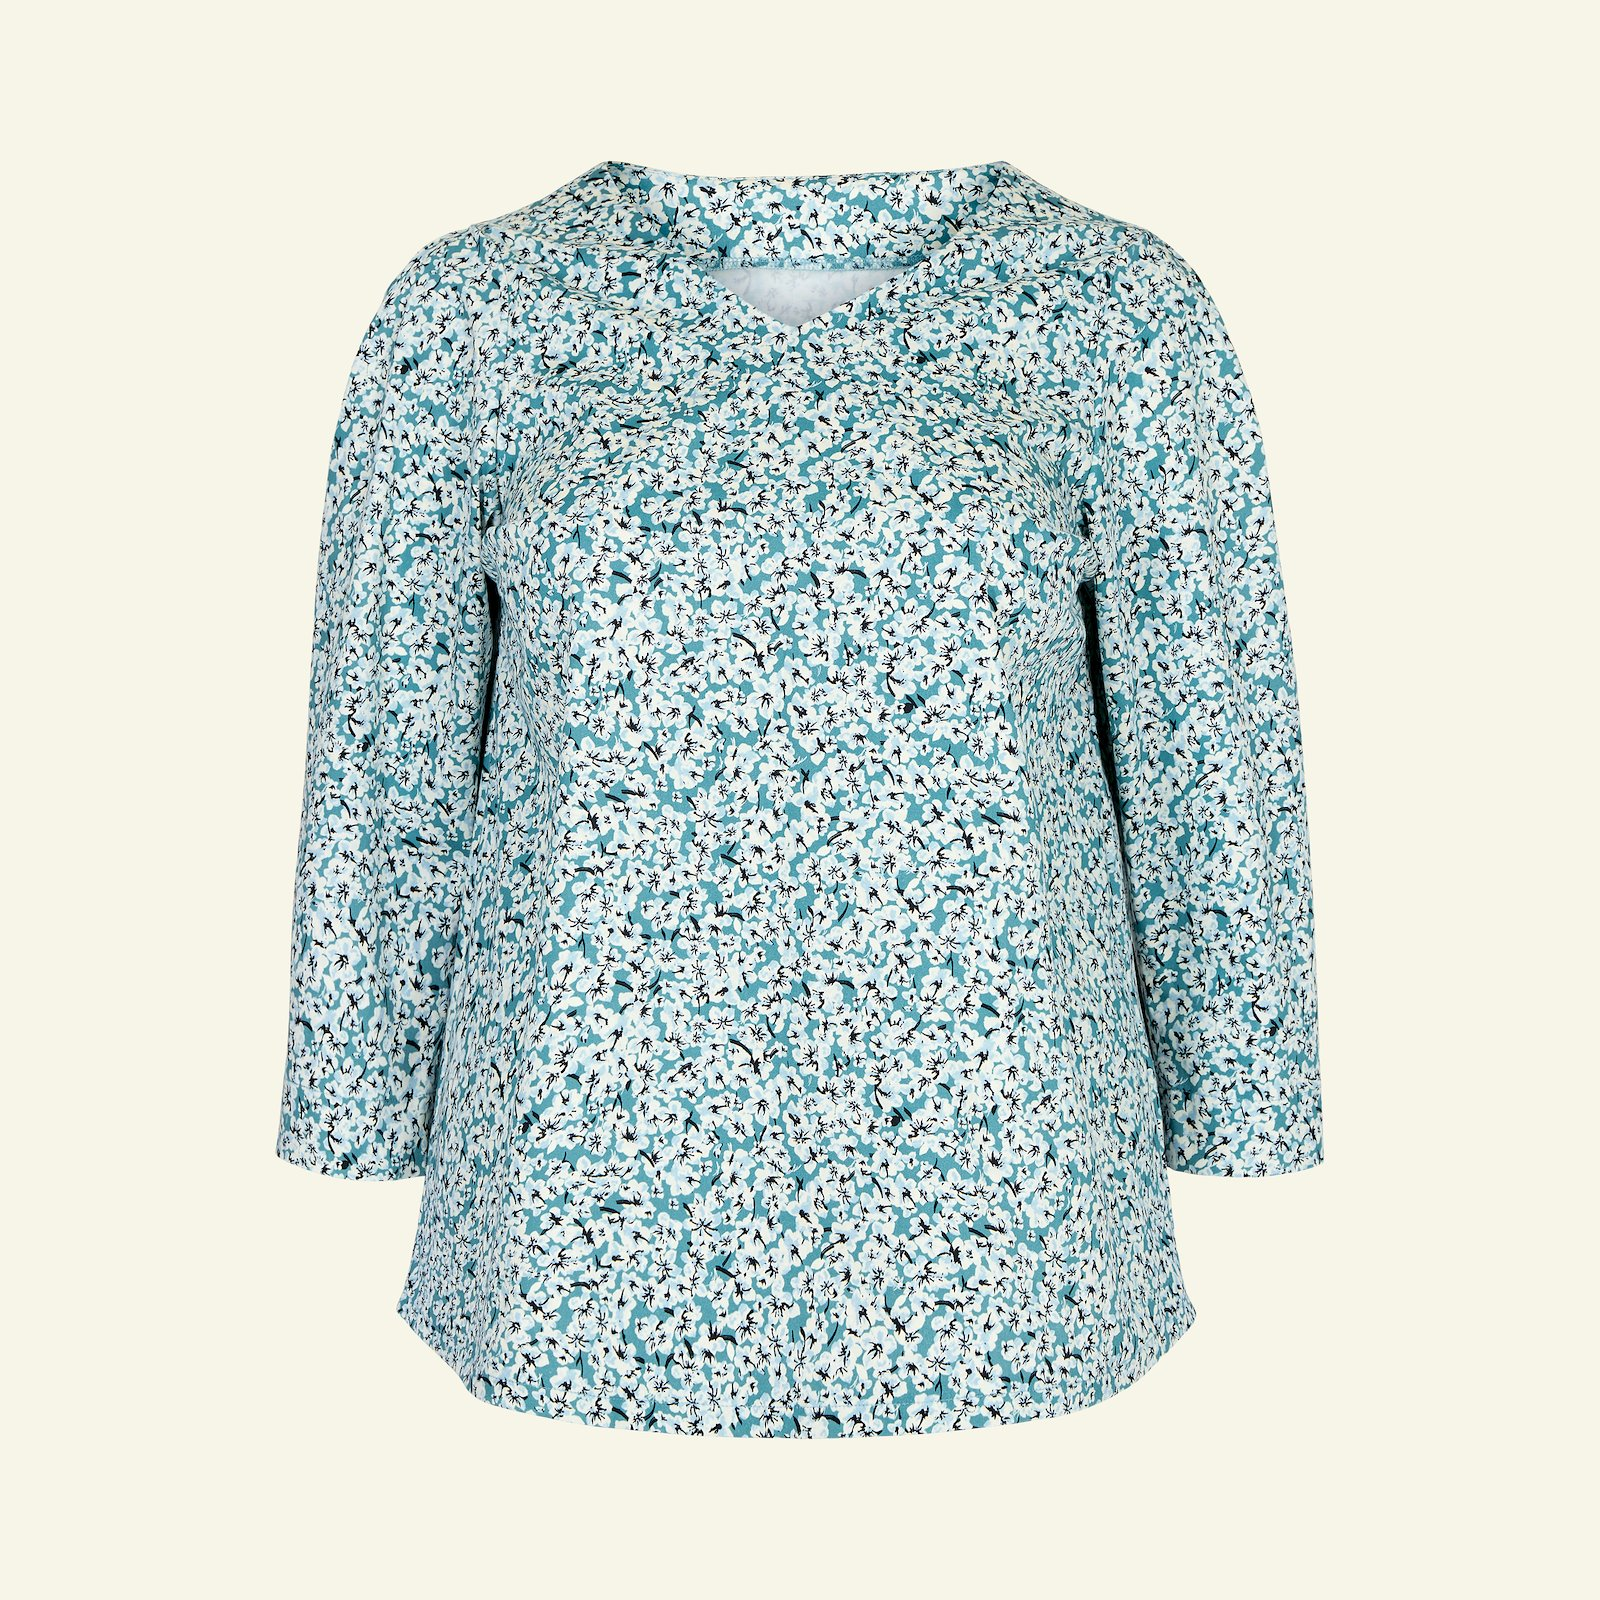 Blouse with long and short sleeve, 58/30 p72006_460860_sskit